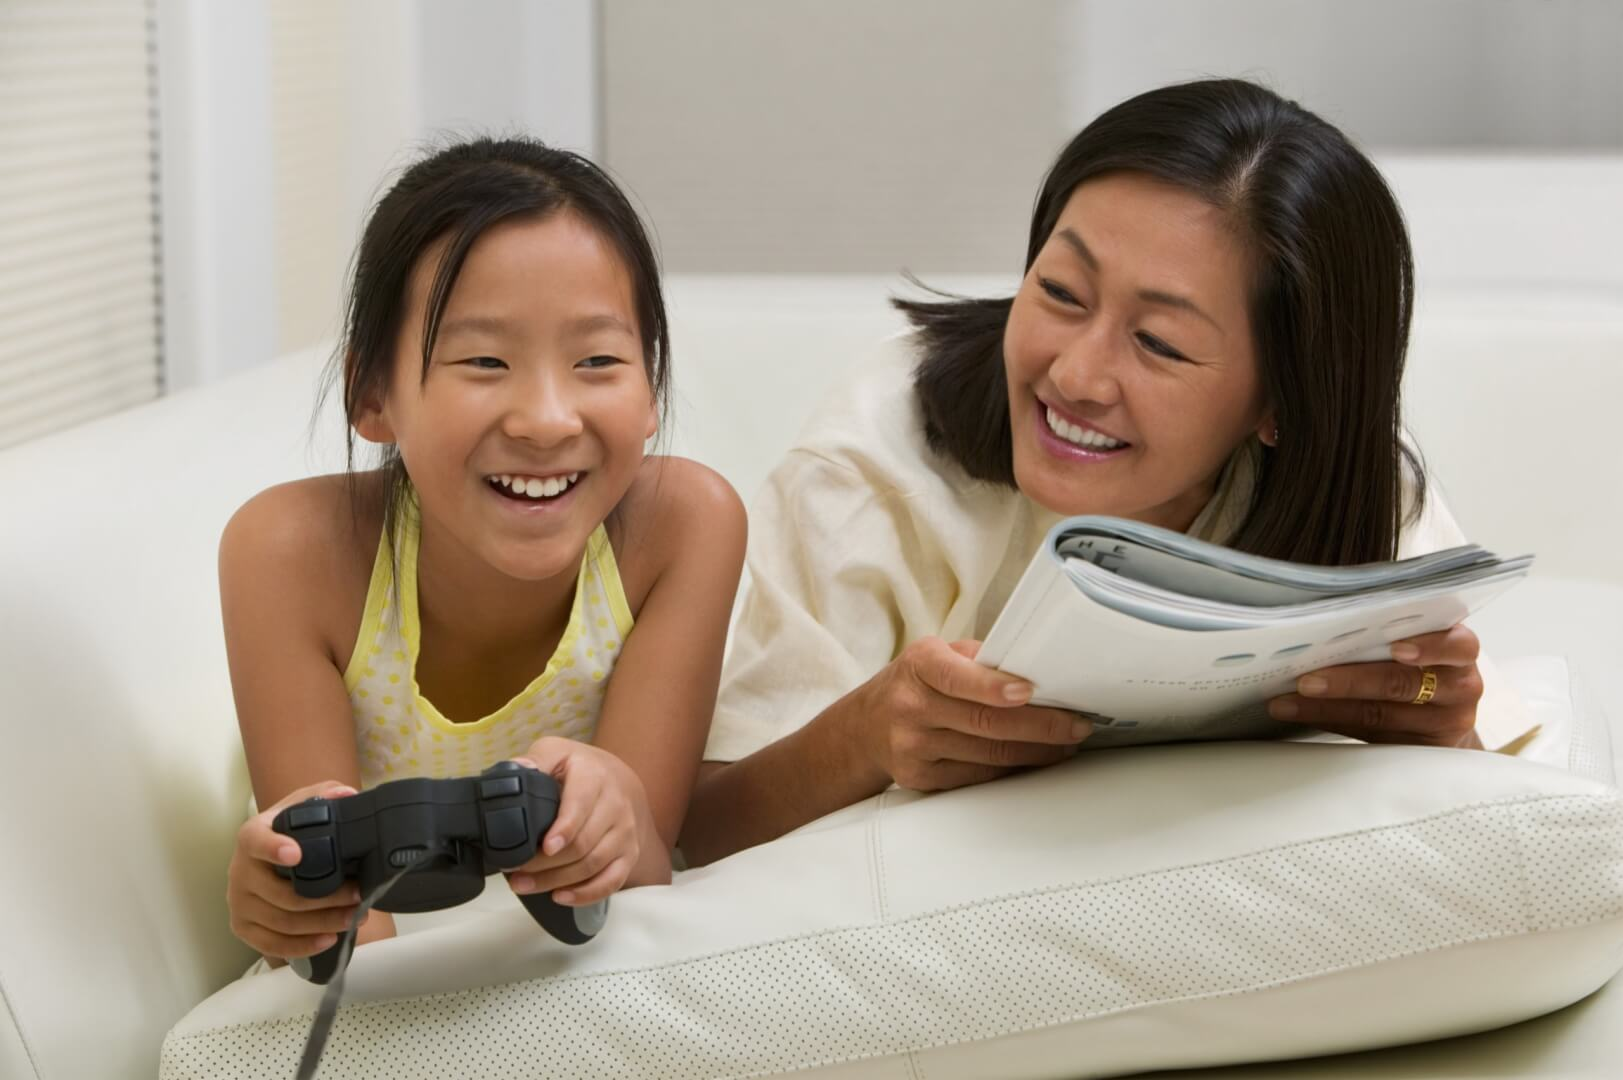 Is gaming safe for my child? blogpost and podcast on gamificationnation.com